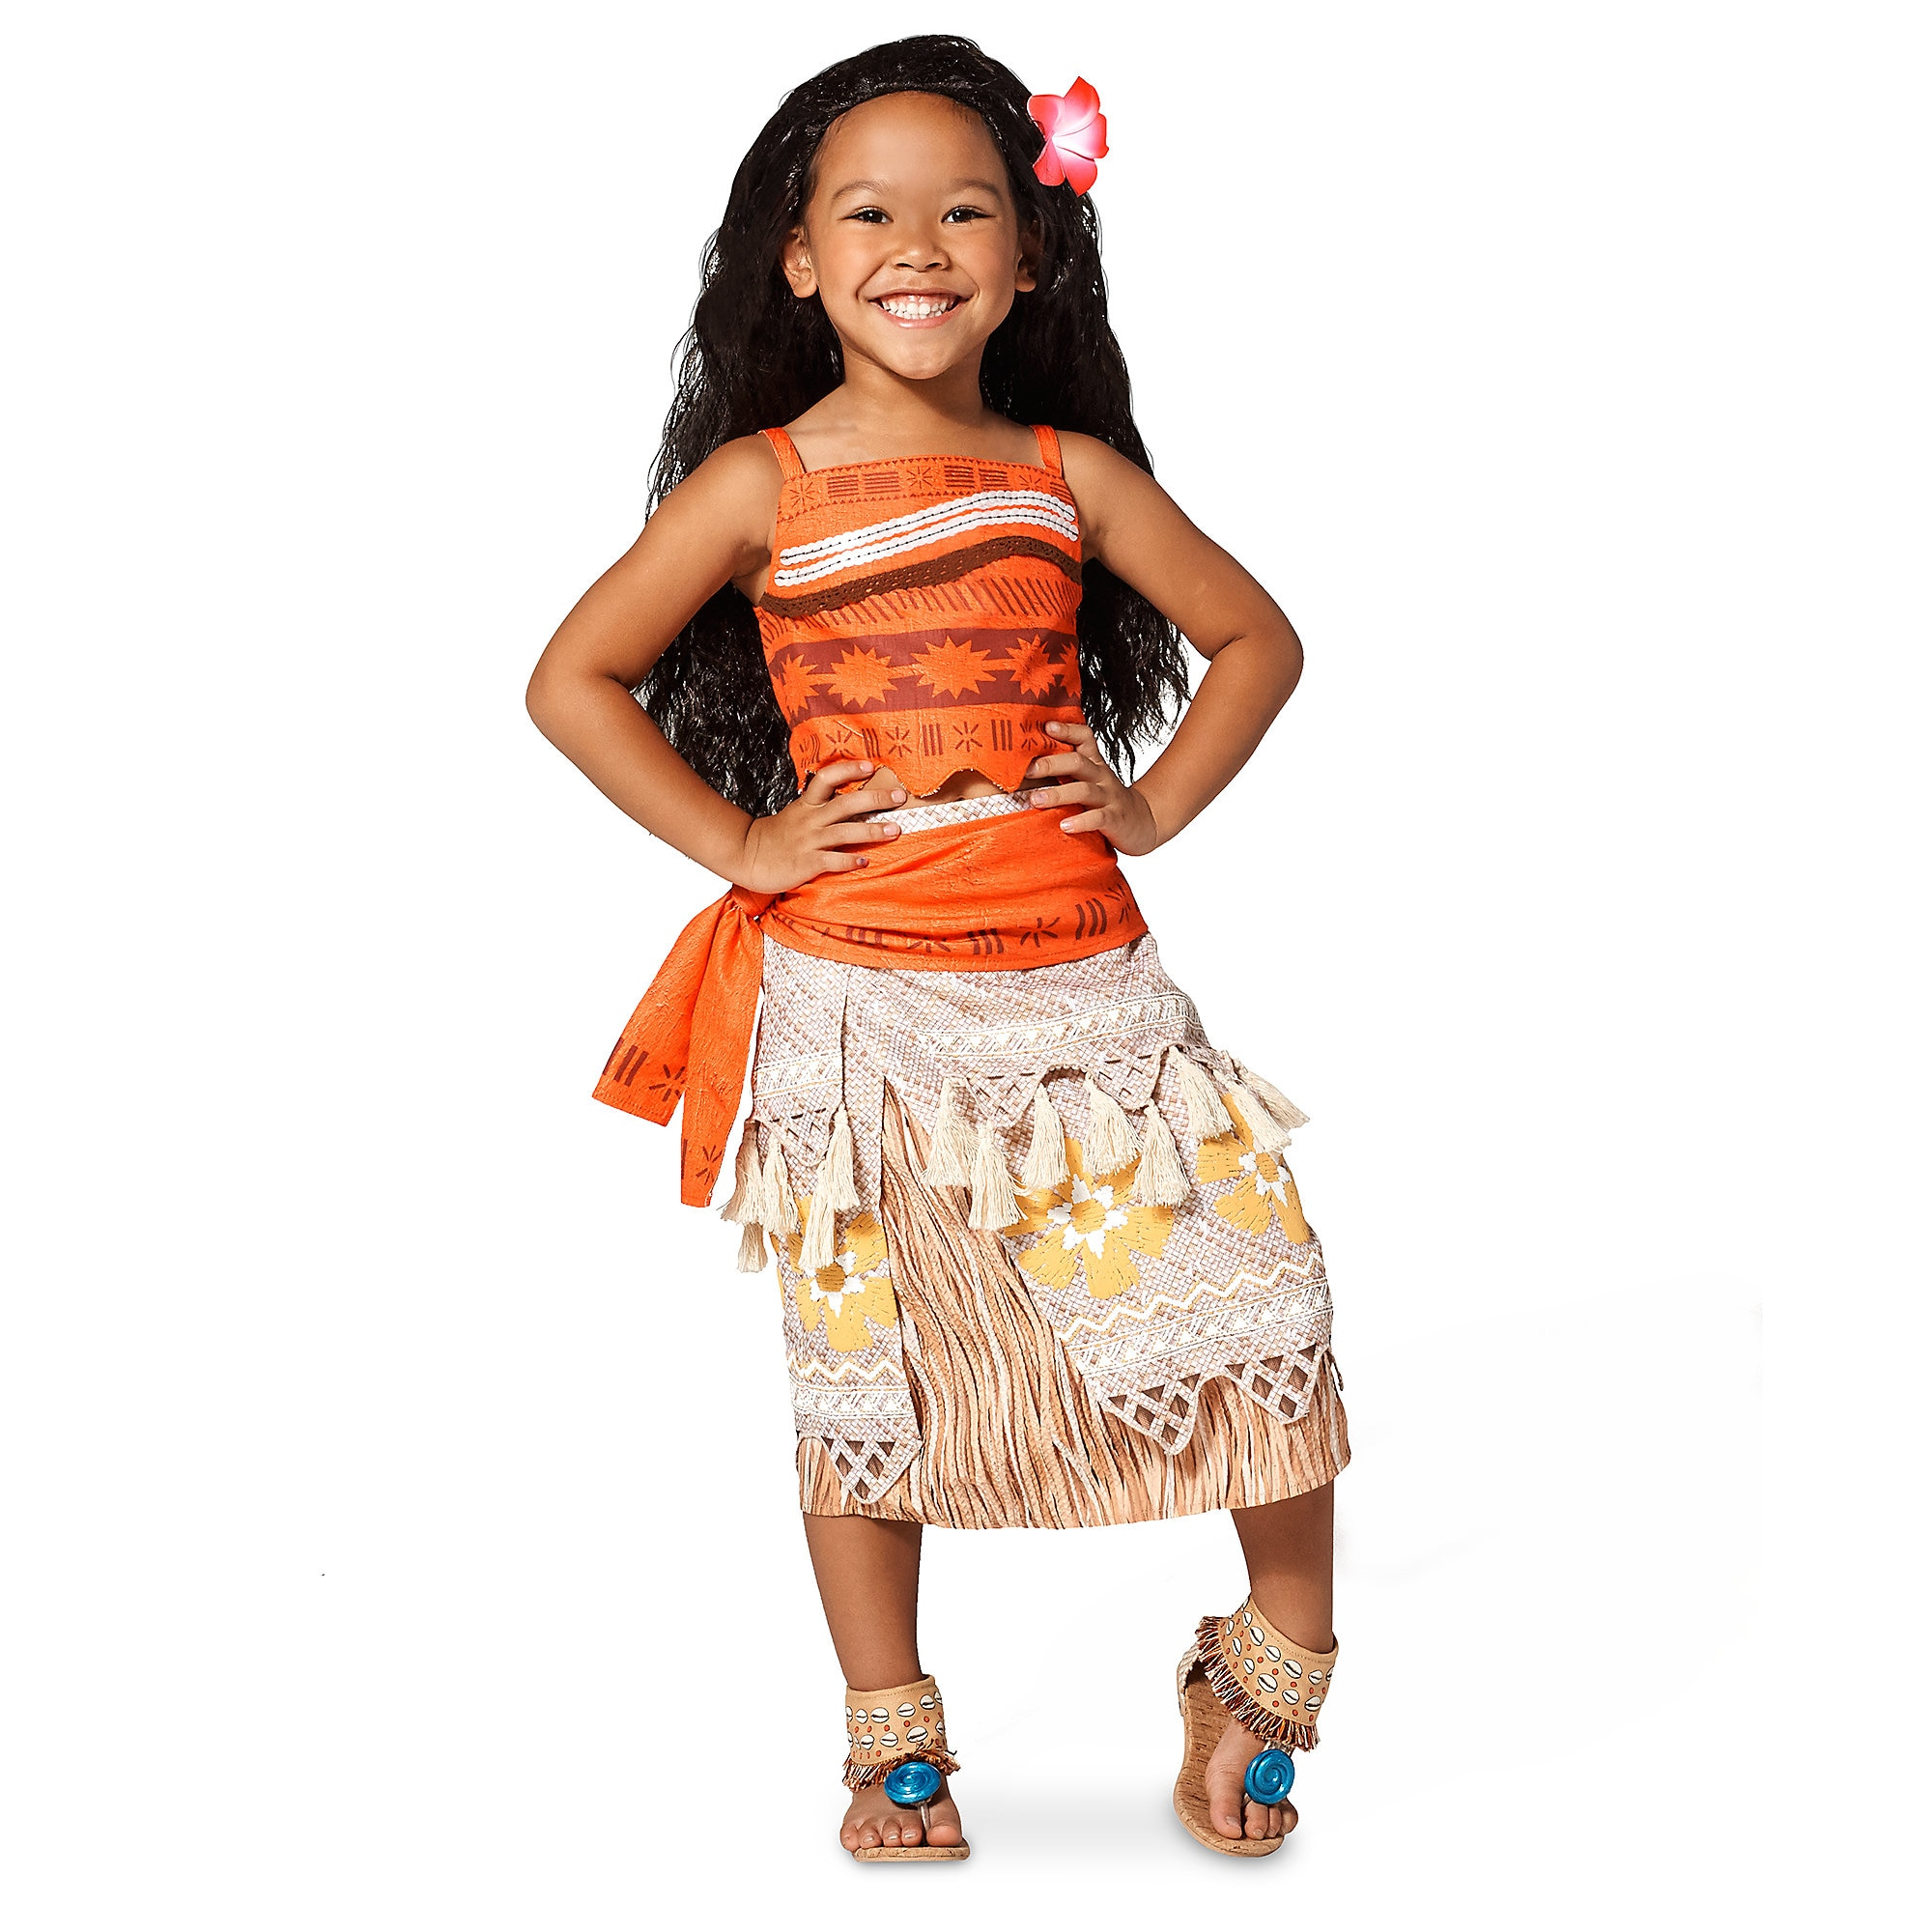 Moana Costume Collection for Kids  sc 1 st  shopDisney & Moana Costume Collection for Kids | shopDisney